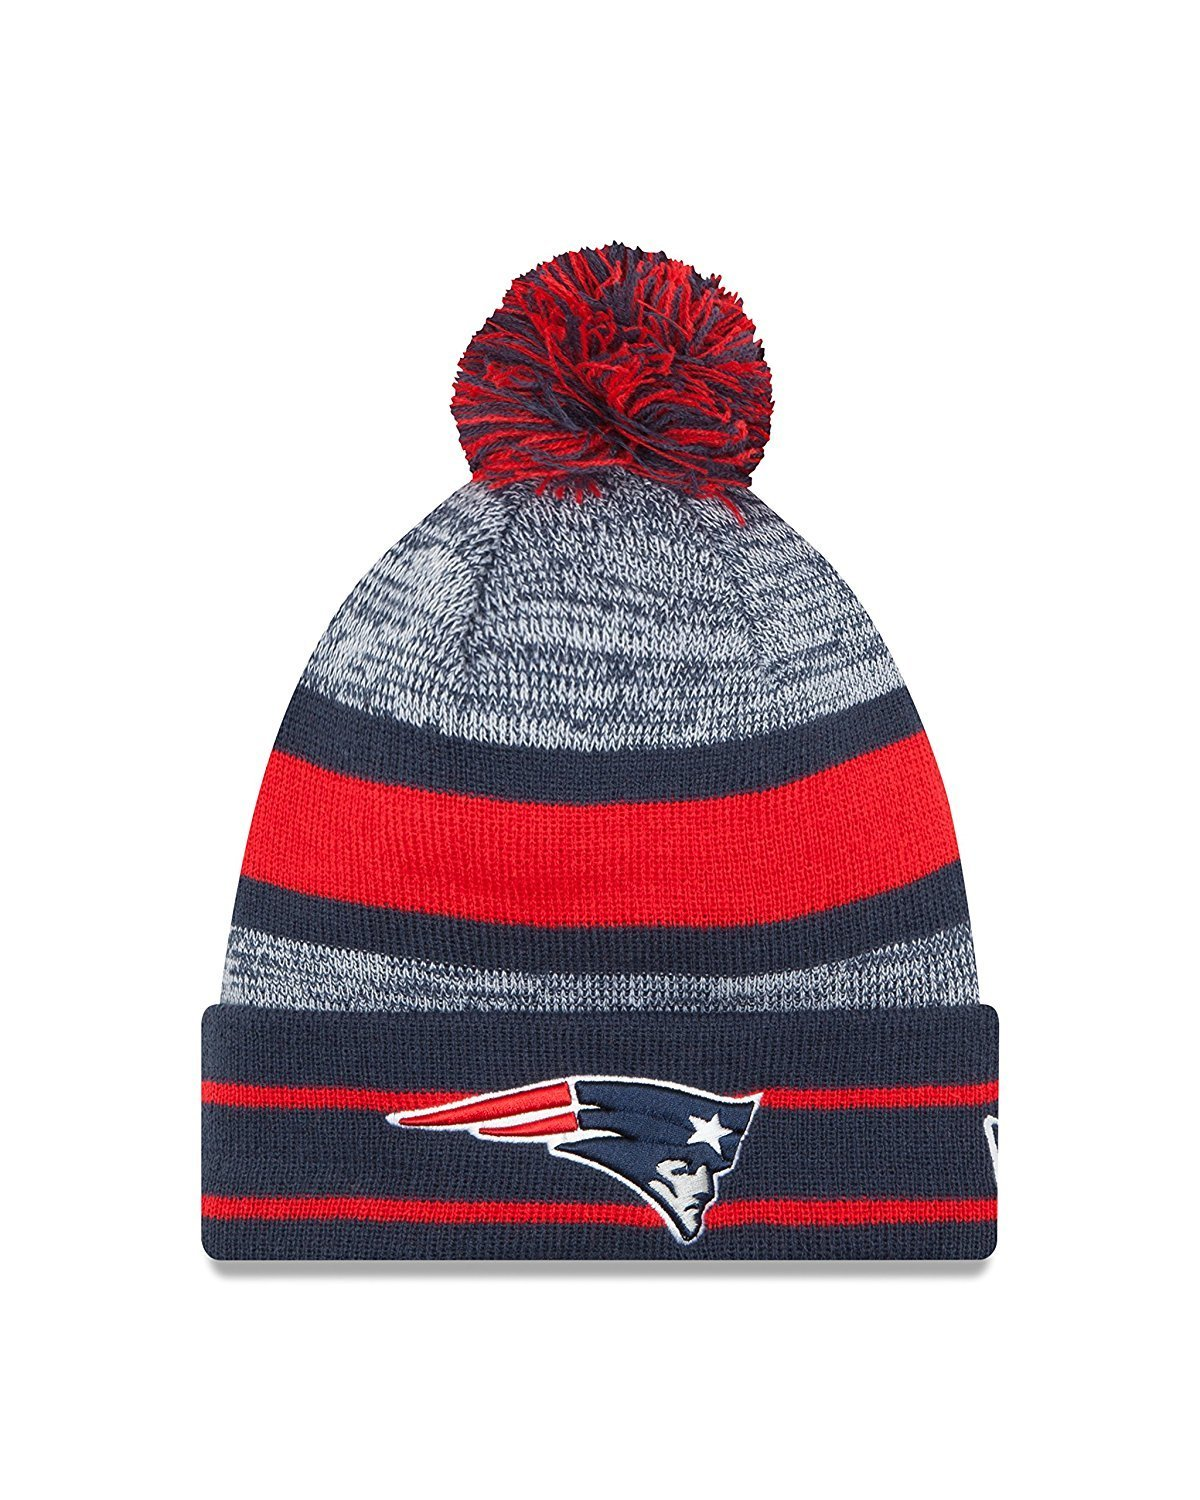 952fb99e60e Get Quotations · New Era NFL New England Patriots On Field Blue Sport Knit  Beanie Hat With Pom